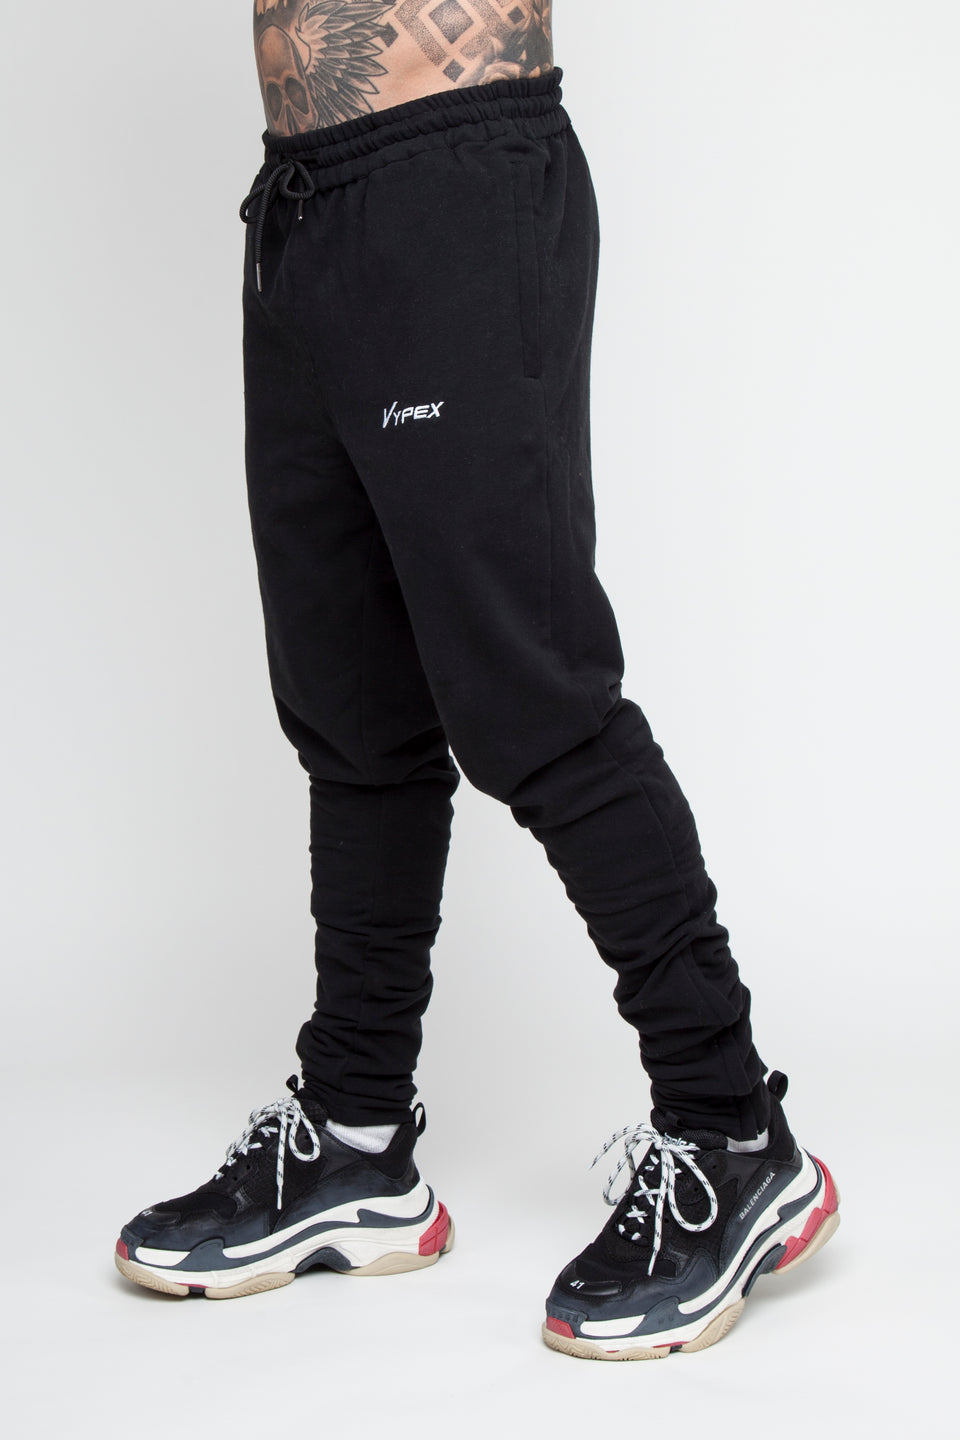 Vypex® Impression V2 Bottoms - Black/Black